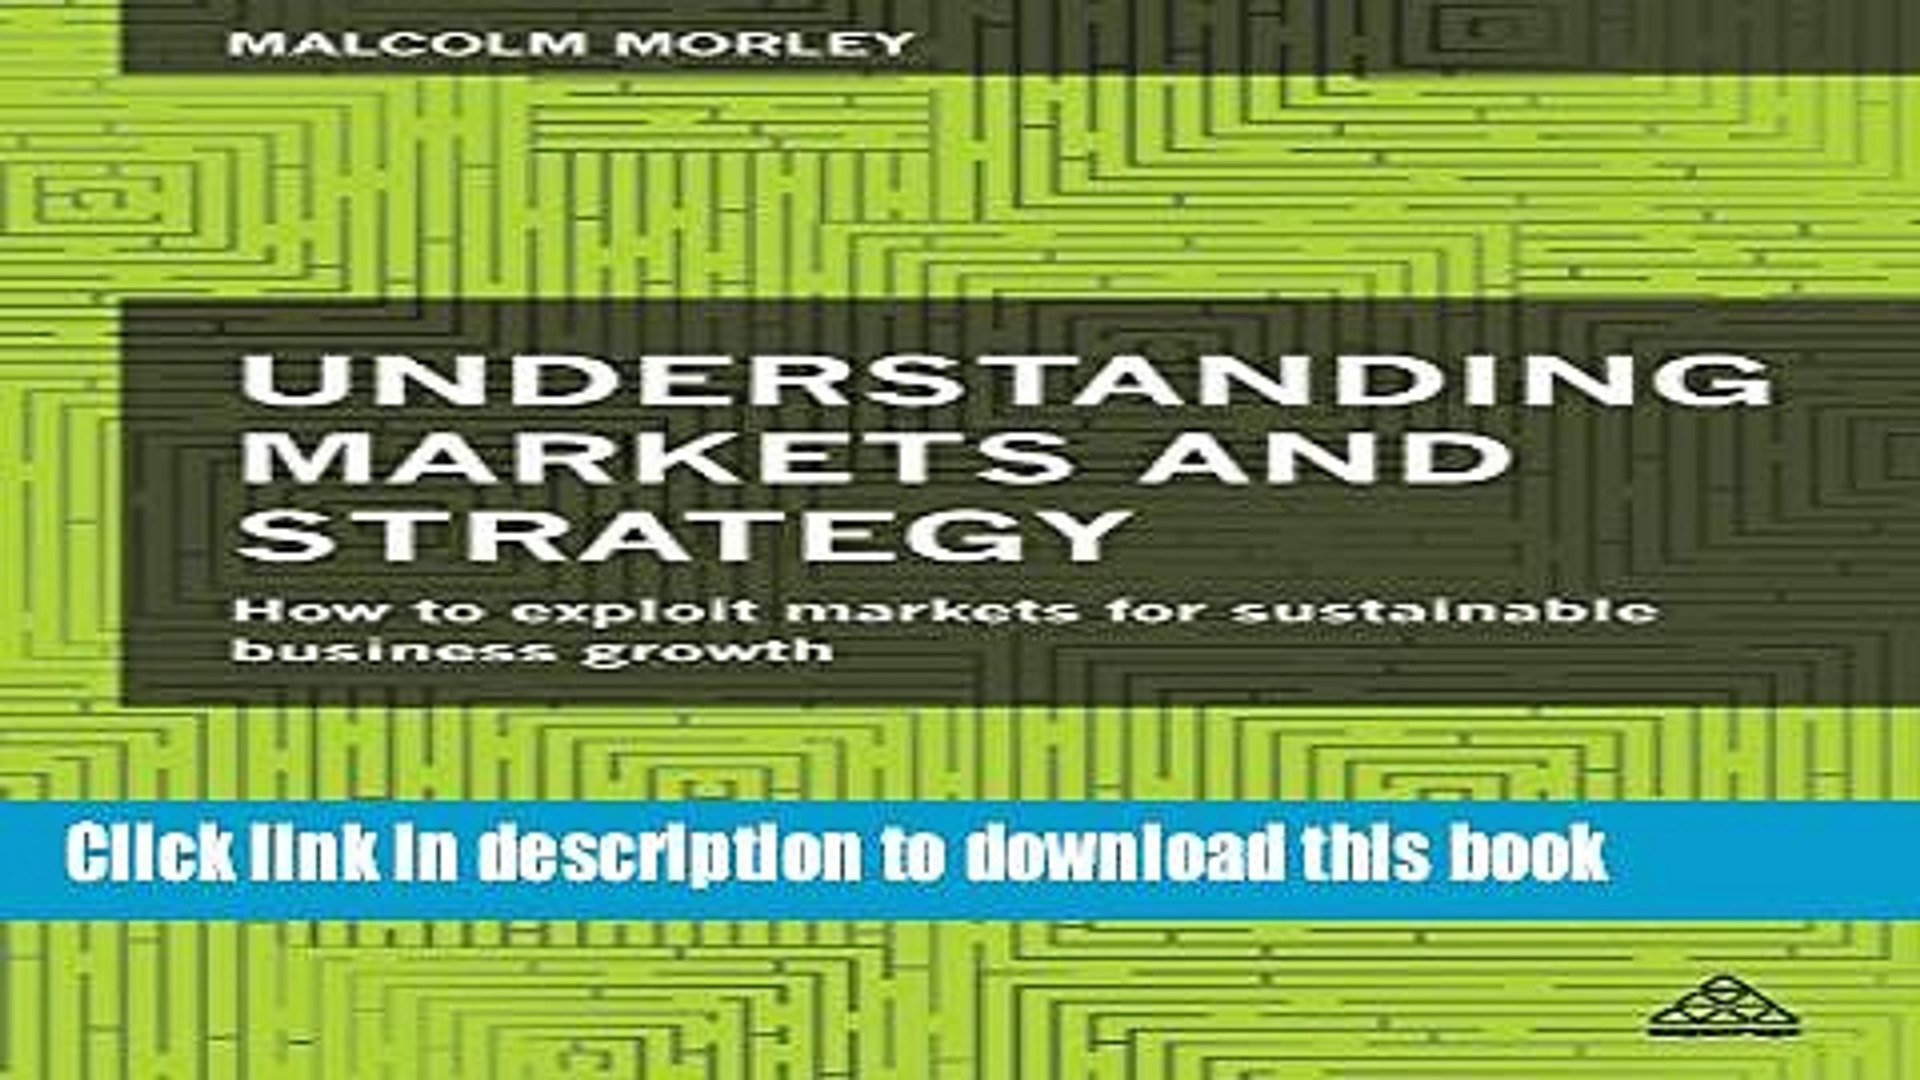 Read Understanding Markets and Strategy: How to Exploit Markets for Sustainable Business Growth